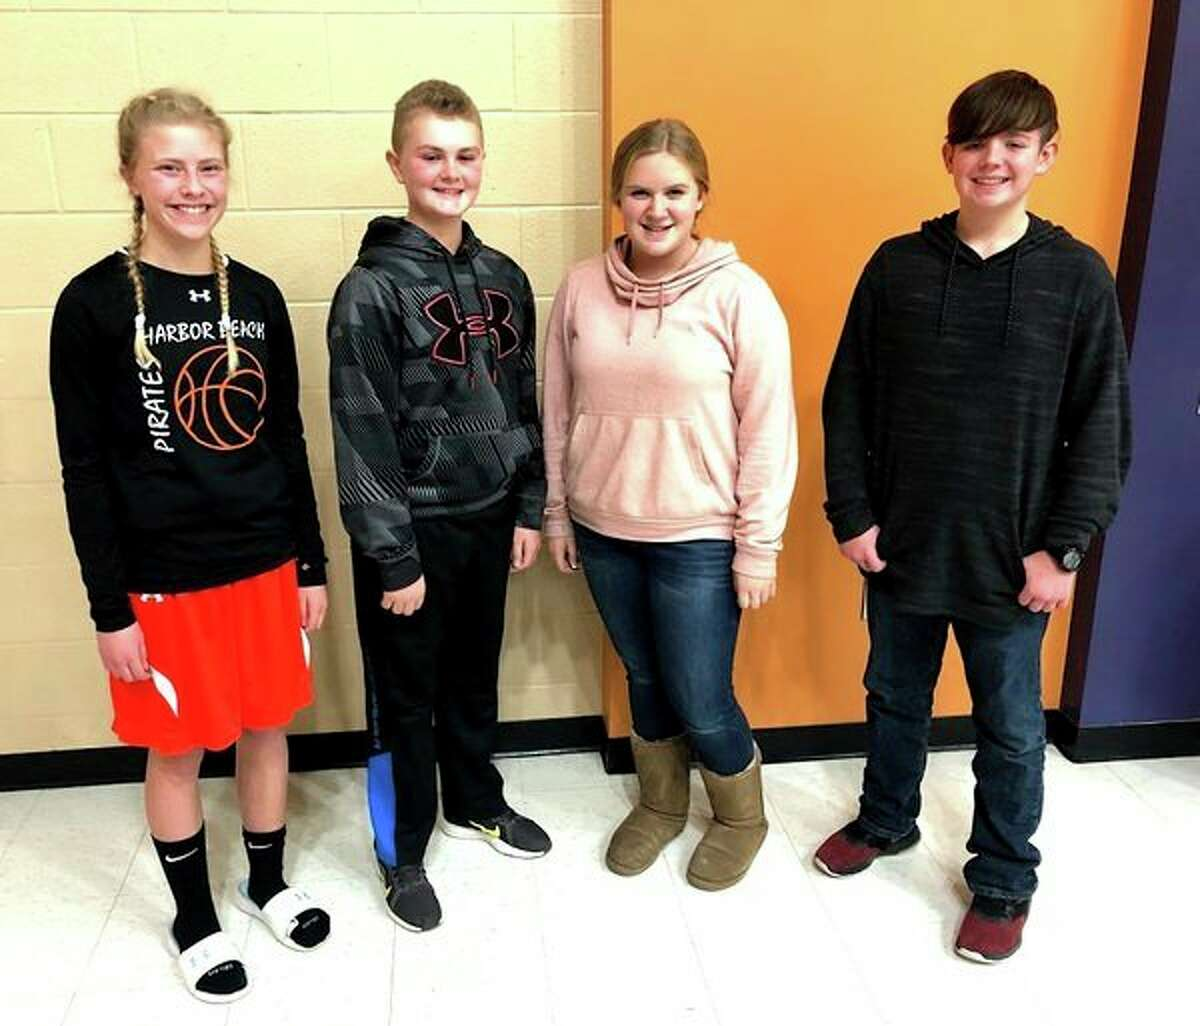 Level two winners from grades 7-9 are Savana Roggenbuck, Hackett Soper, Max Climer, and McKenna Booms. (Submitted Photo)